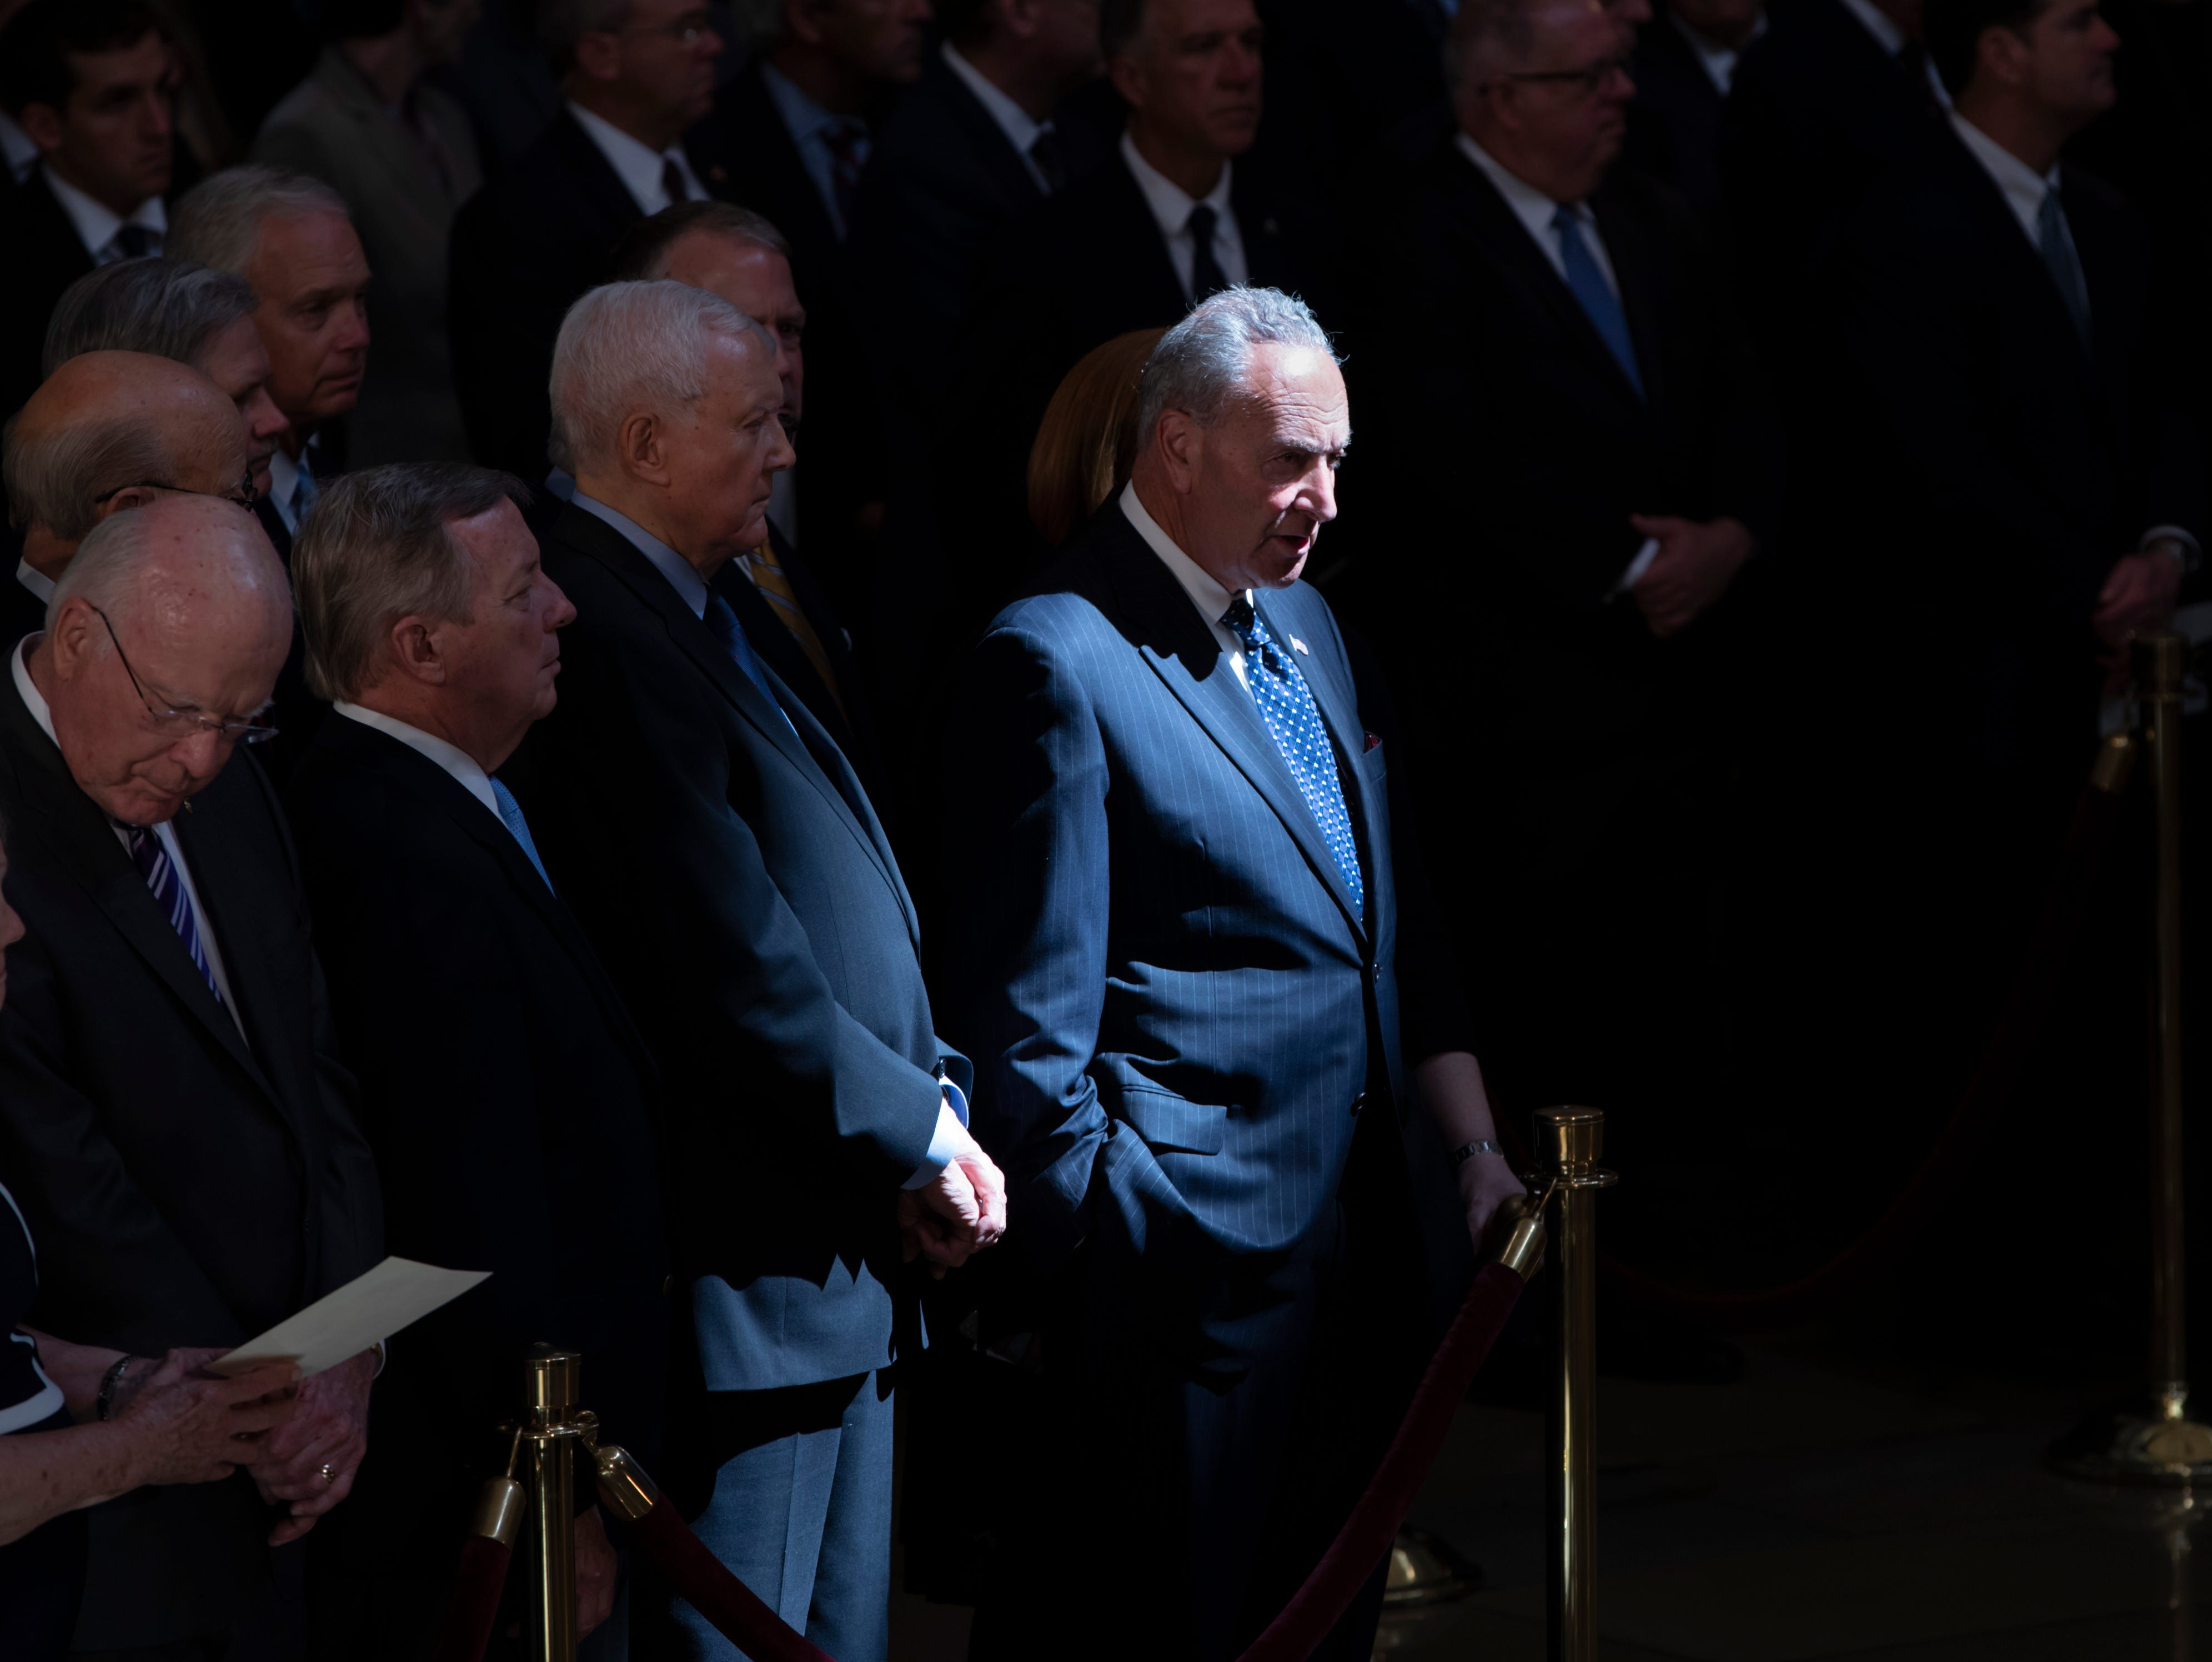 Senate Minority Leader Chuck Schumer, D-N.Y., center, and other members of the Senate, stand as the flag-draped casket bearing the remains of Sen. John McCain of Arizona, lies in state in the U.S. Capitol rotunda for a farewell ceremony and public visitation, Friday, Aug. 31, 2018, in Washington. (AP Photo/J. Scott Applewhite)